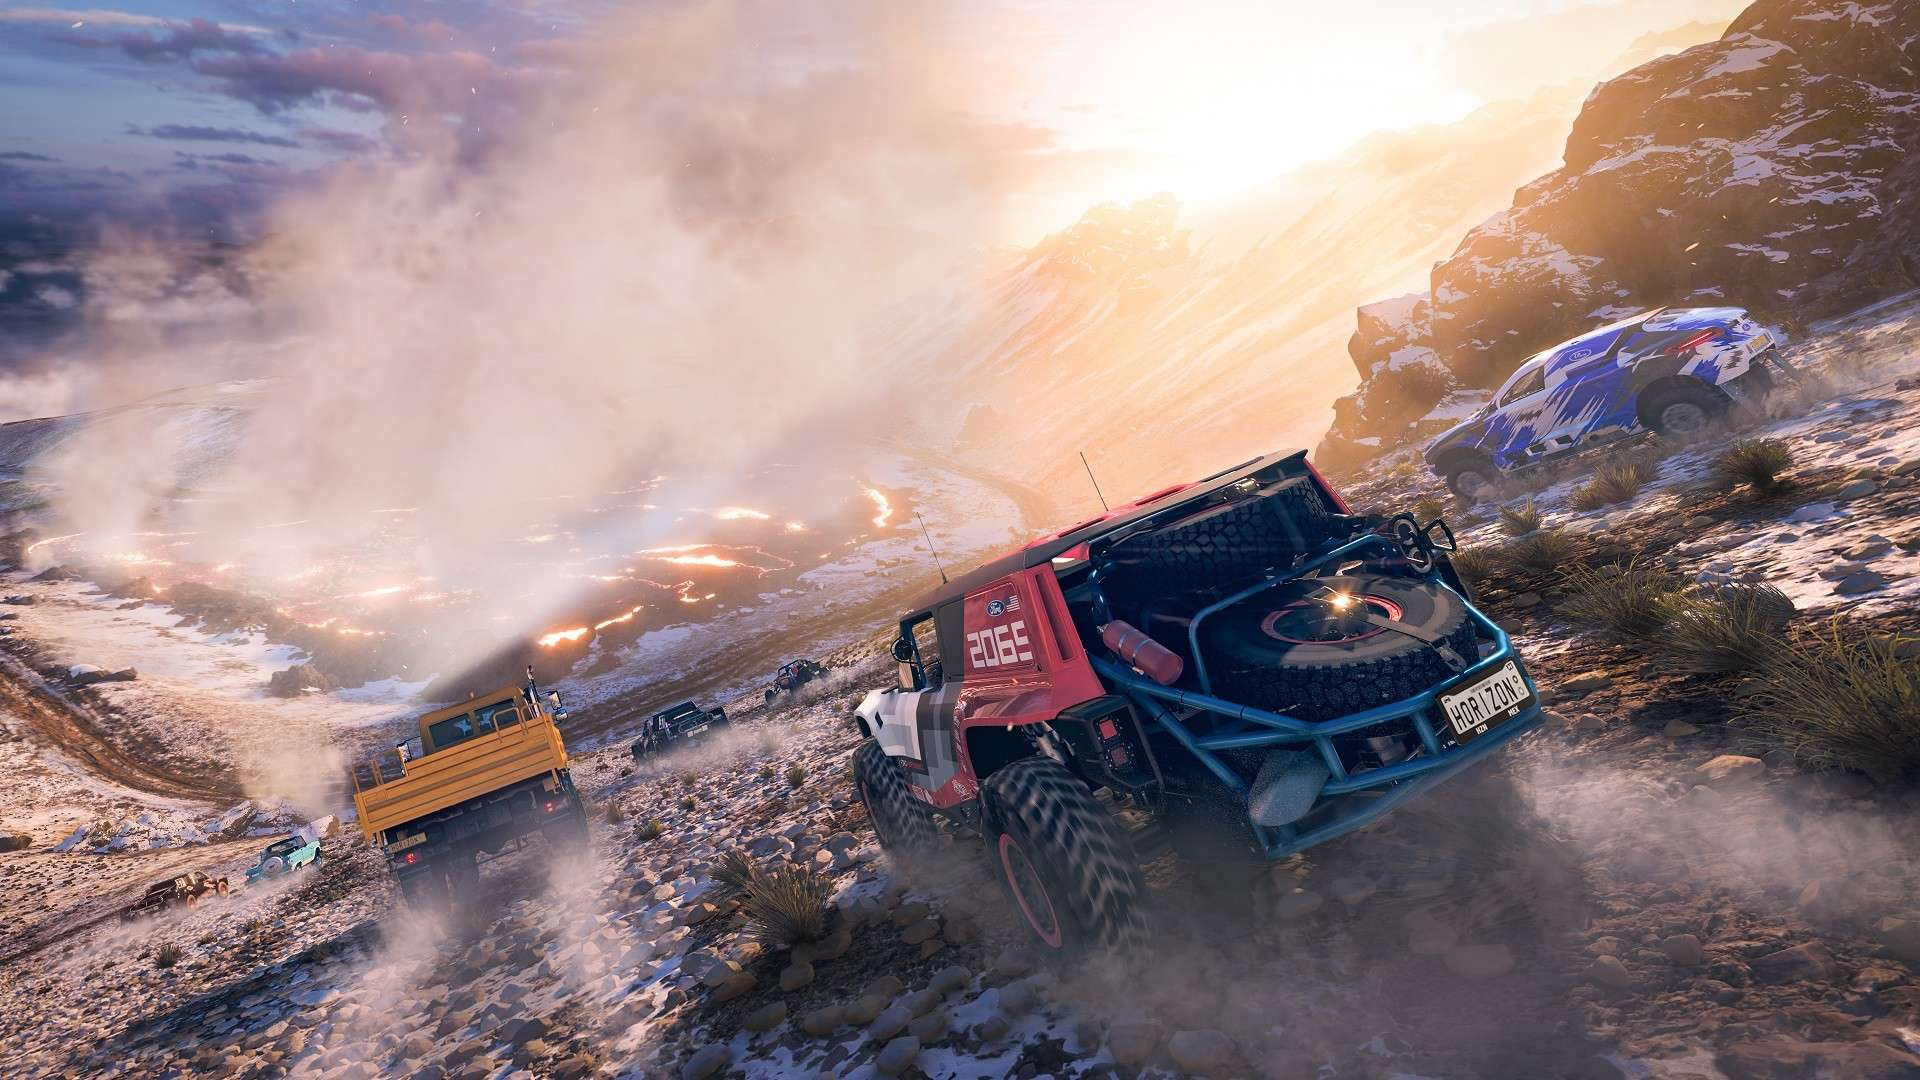 Forza Horizon 5's low system requirements mean it should run on most gaming PCs